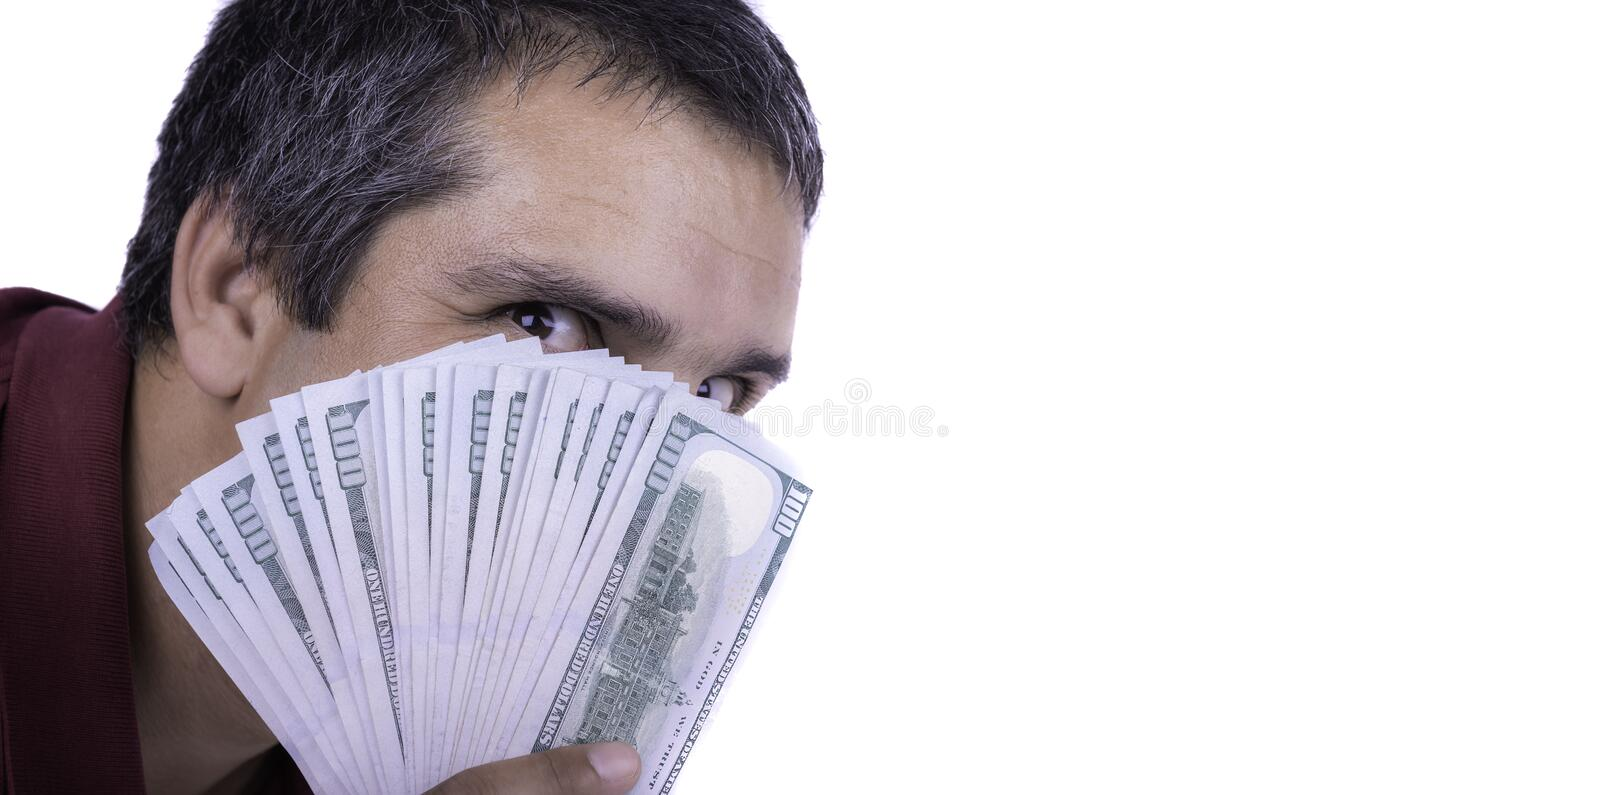 Man holding a widespread of one hundred dollar bills covering his face looking directly at camera greedy lustful satisfied royalty free stock image